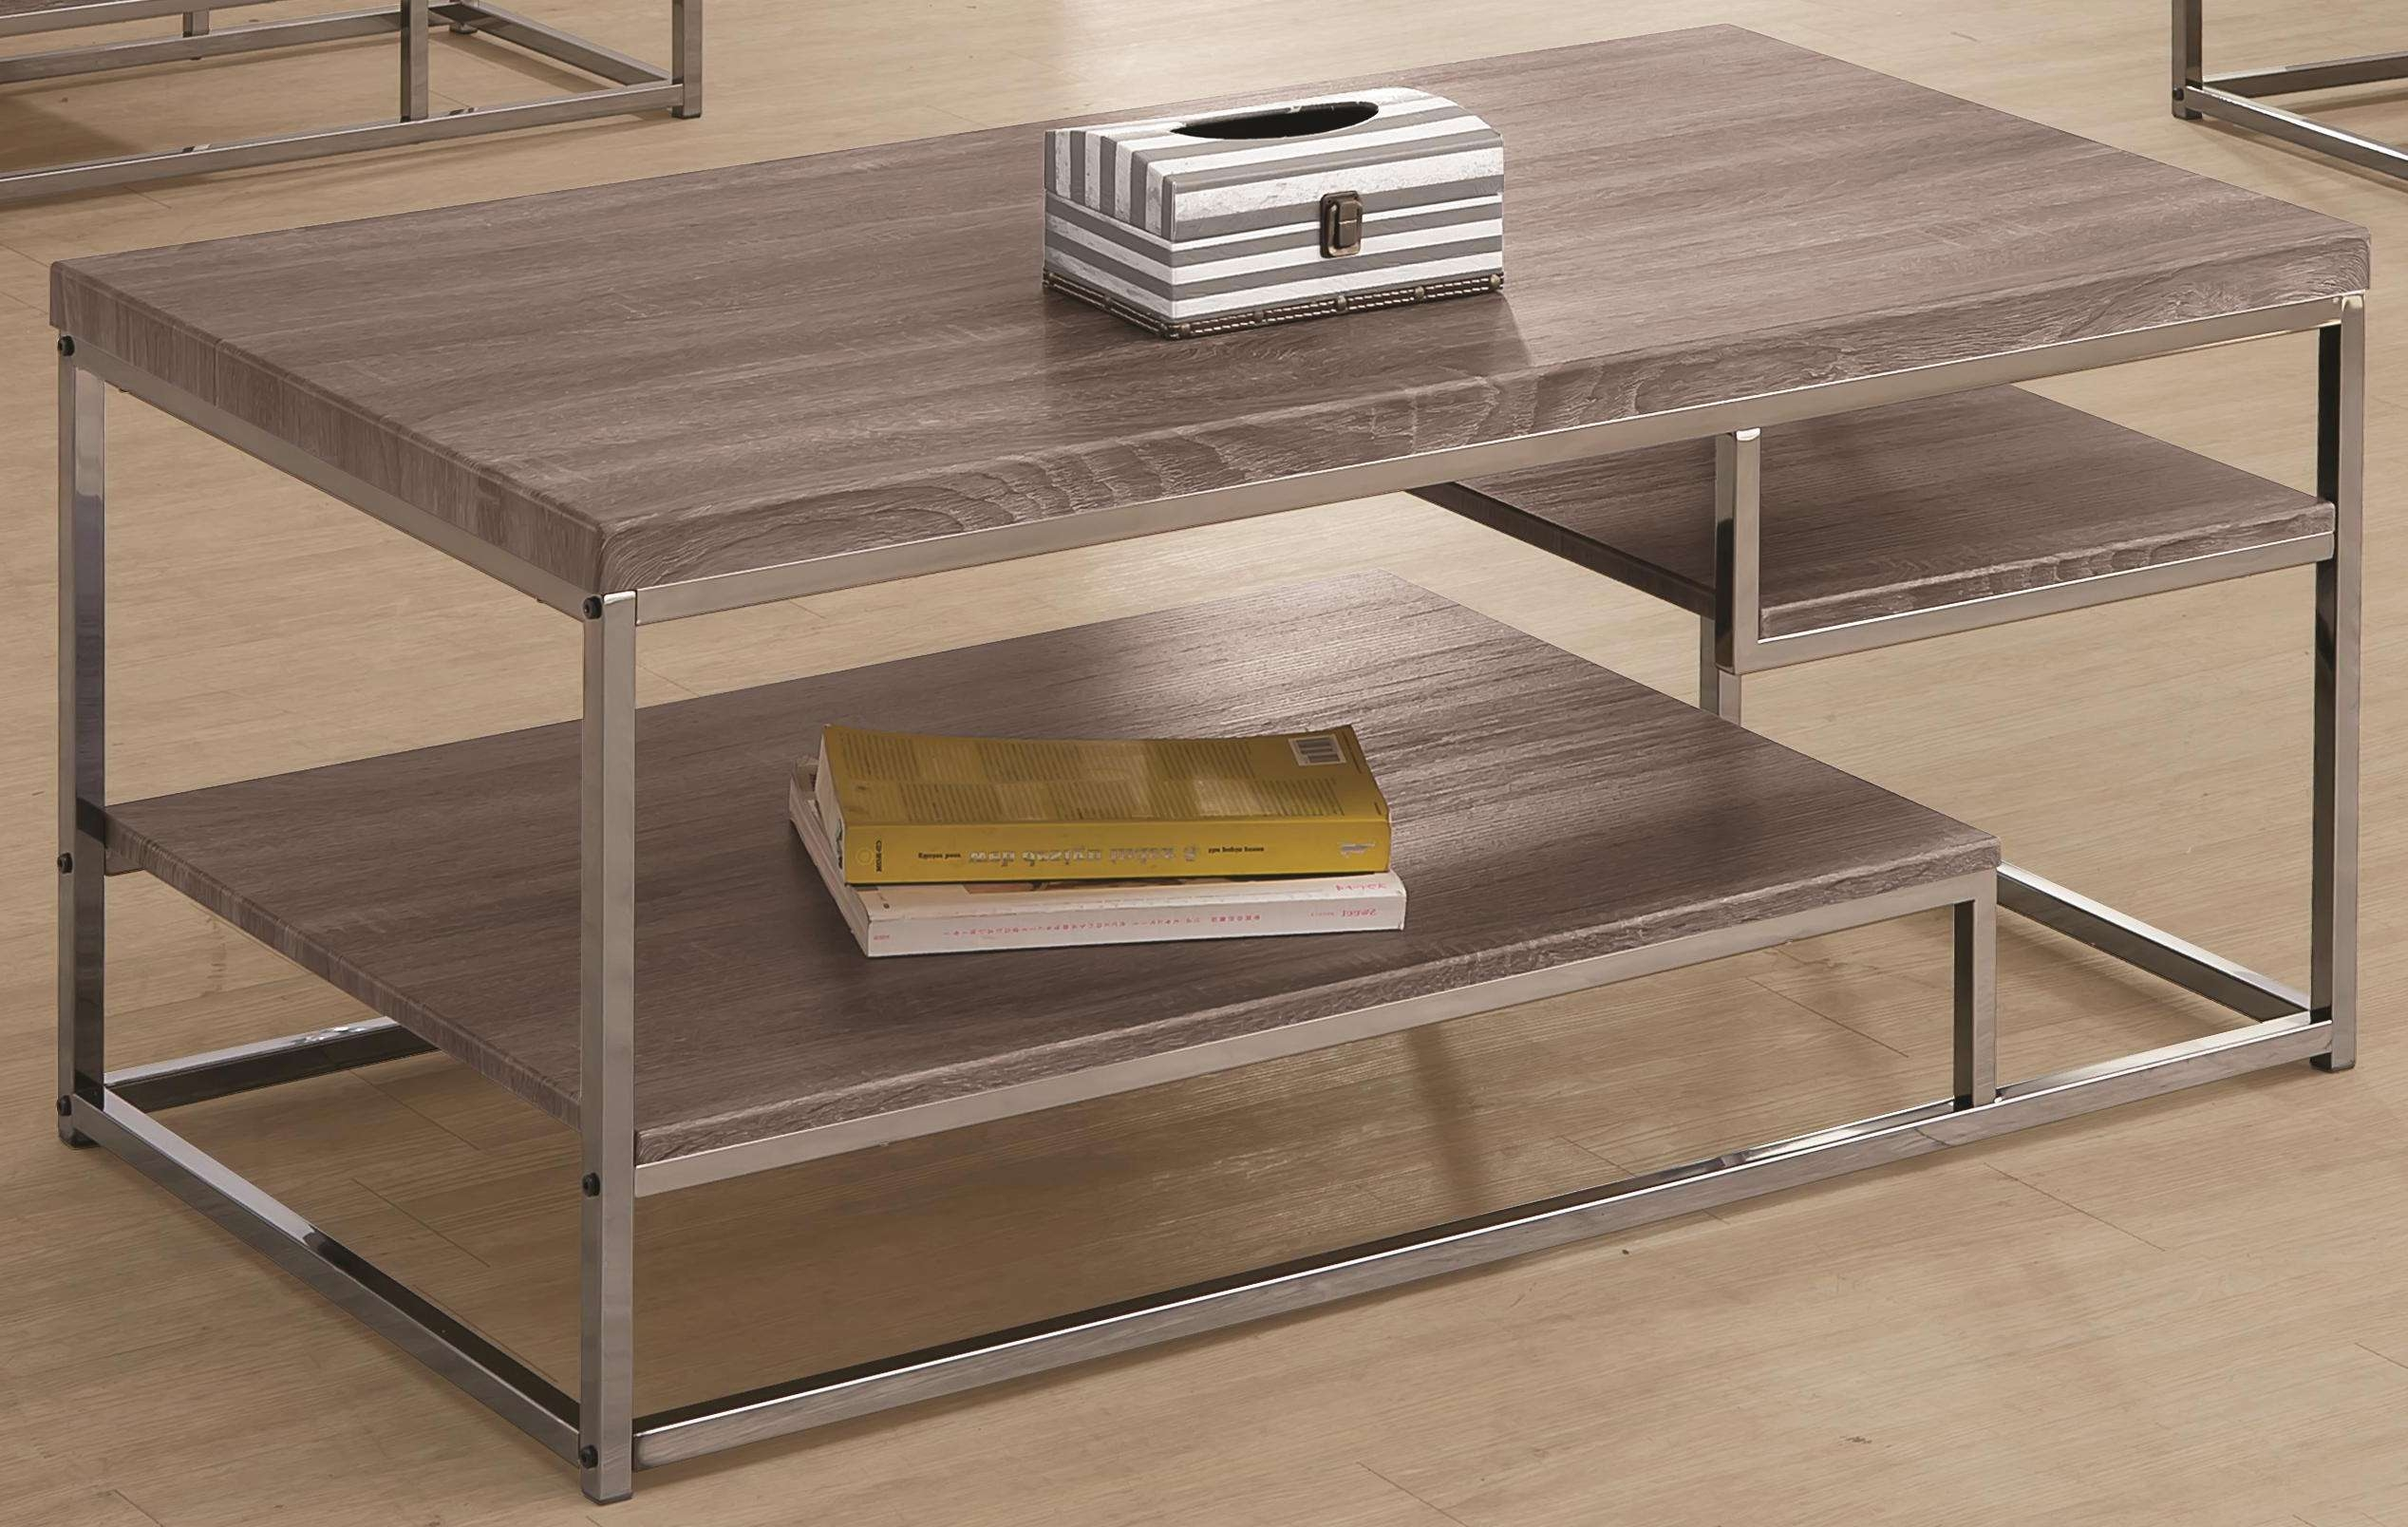 Coaster 7037 703728 2 Shelf Coffee Table With Wood Top And Chrome In Popular Wood Chrome Coffee Tables (View 3 of 20)